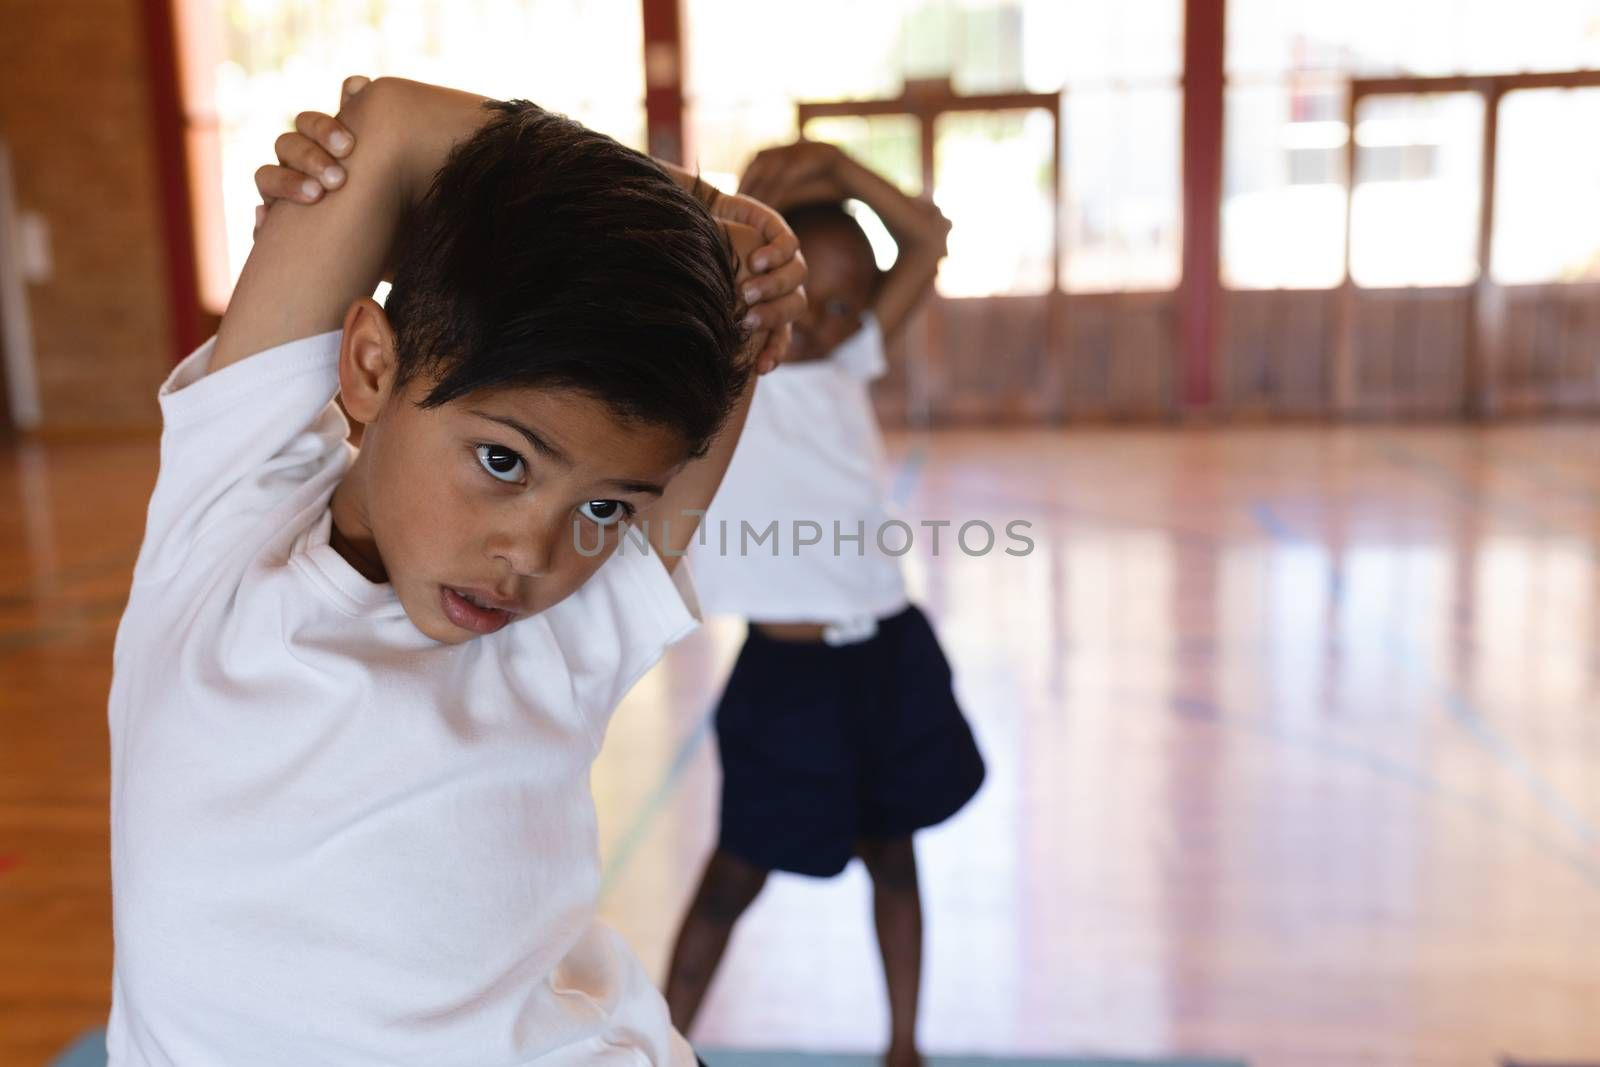 Front view of schoolboy doing yoga on a yoga mat in school